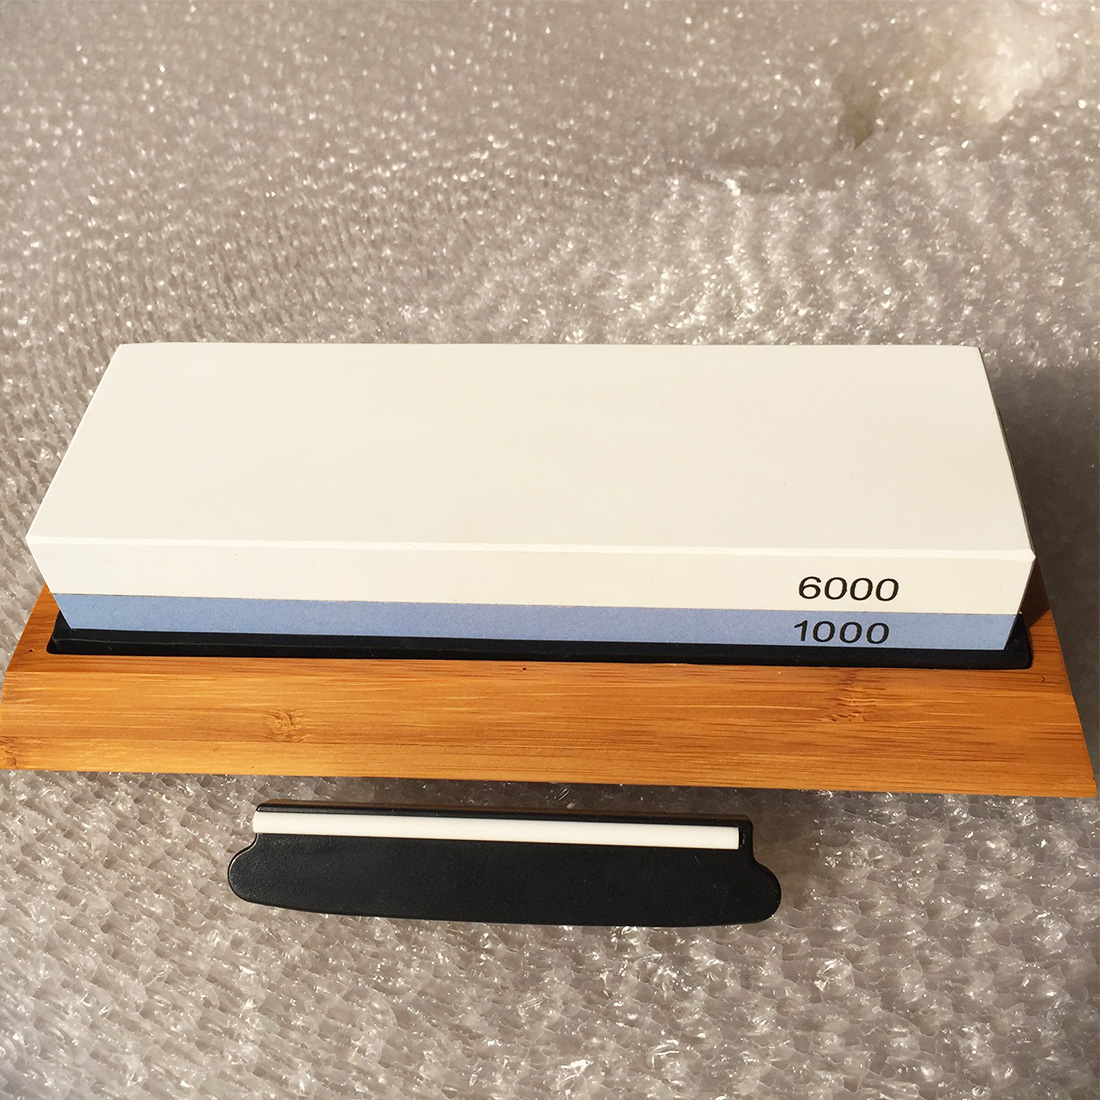 1pc Professional <font><b>Whetstone</b></font> Knife Sharpener Dual Sided <font><b>1000/6000</b></font> Grit Combination Knife Sharpening Water Stone for Kitchen 2018 image